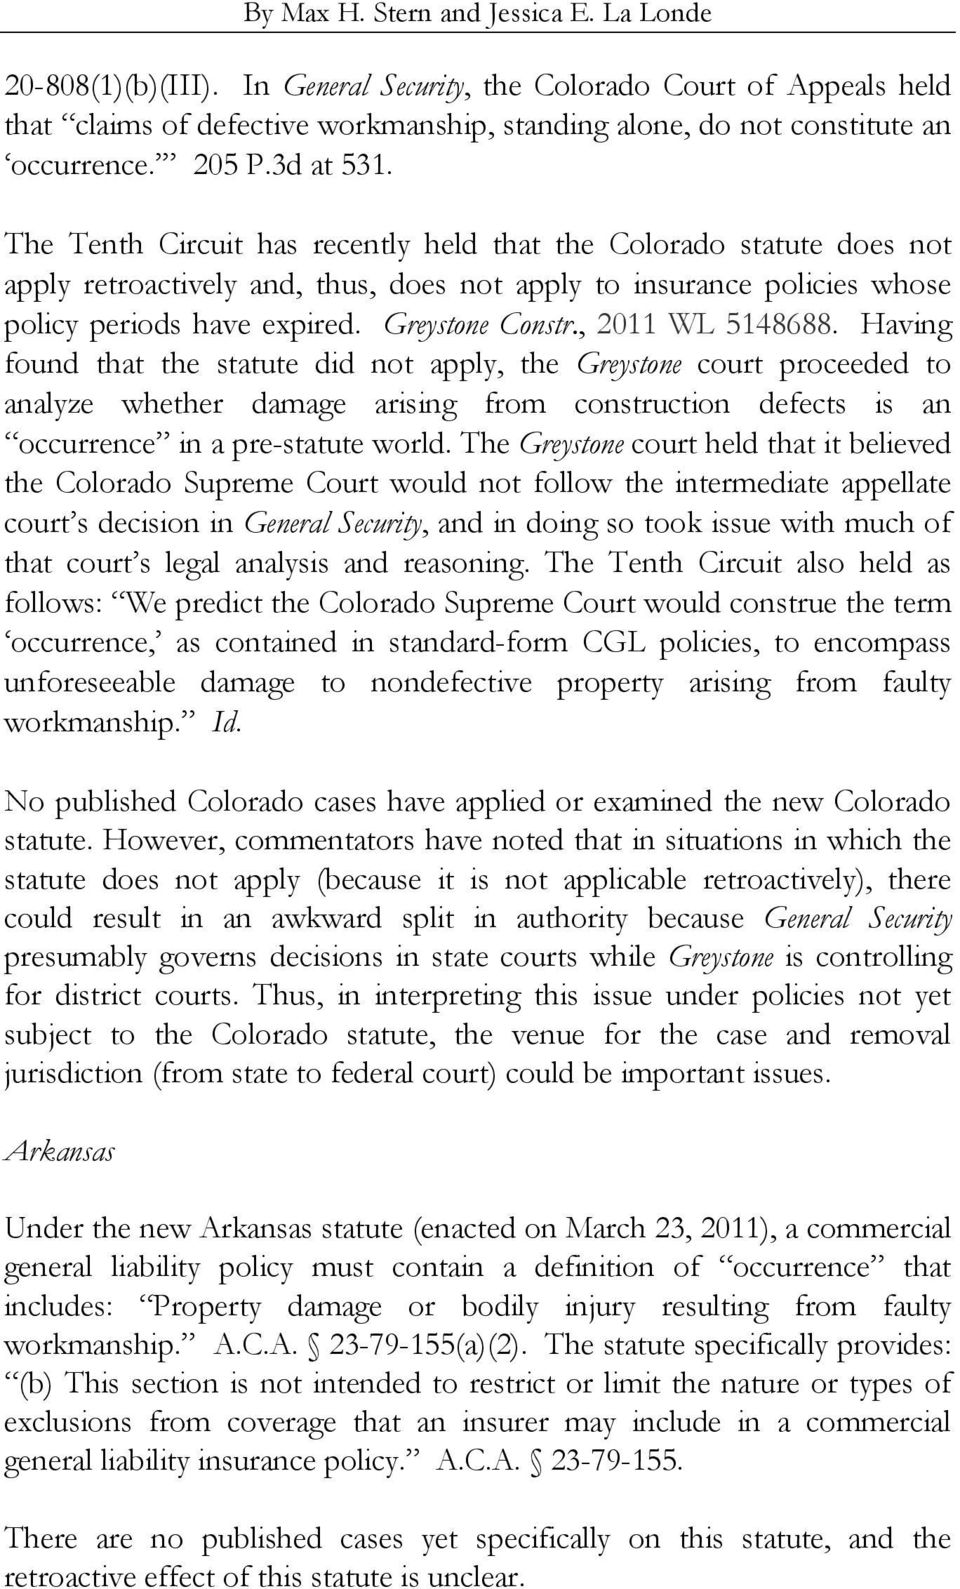 The Tenth Circuit has recently held that the Colorado statute does not apply retroactively and, thus, does not apply to insurance policies whose policy periods have expired. Greystone Constr.